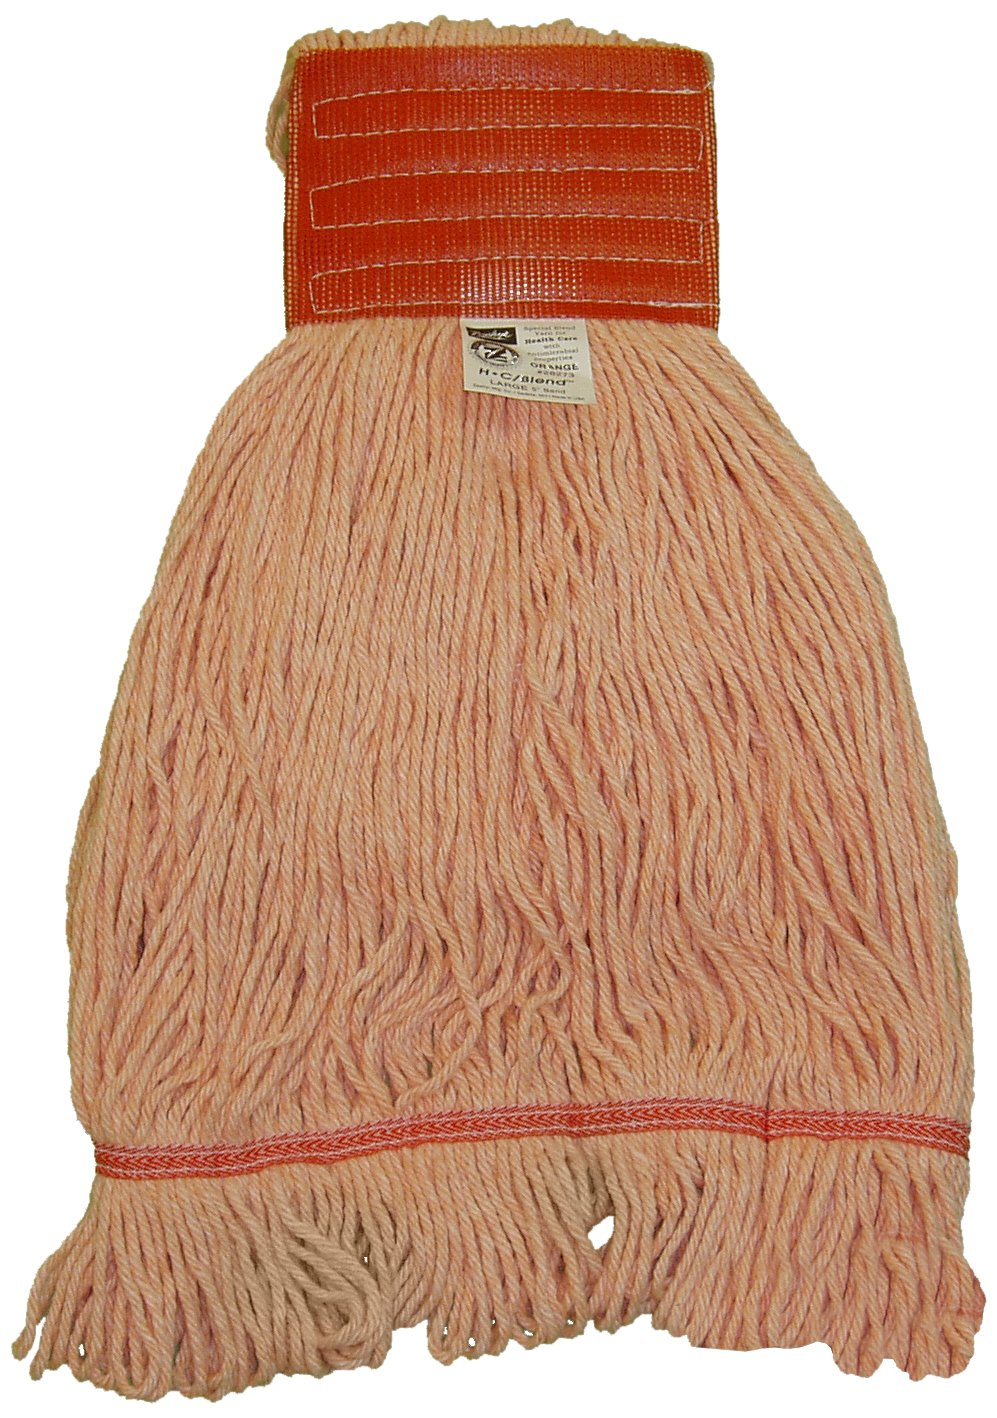 Zephyr 28274 HC/Blend Orange 4-Ply Yarn X-large Health Care Loop Mop Head with 5'' Mesh Wide Band (Pack of 12)